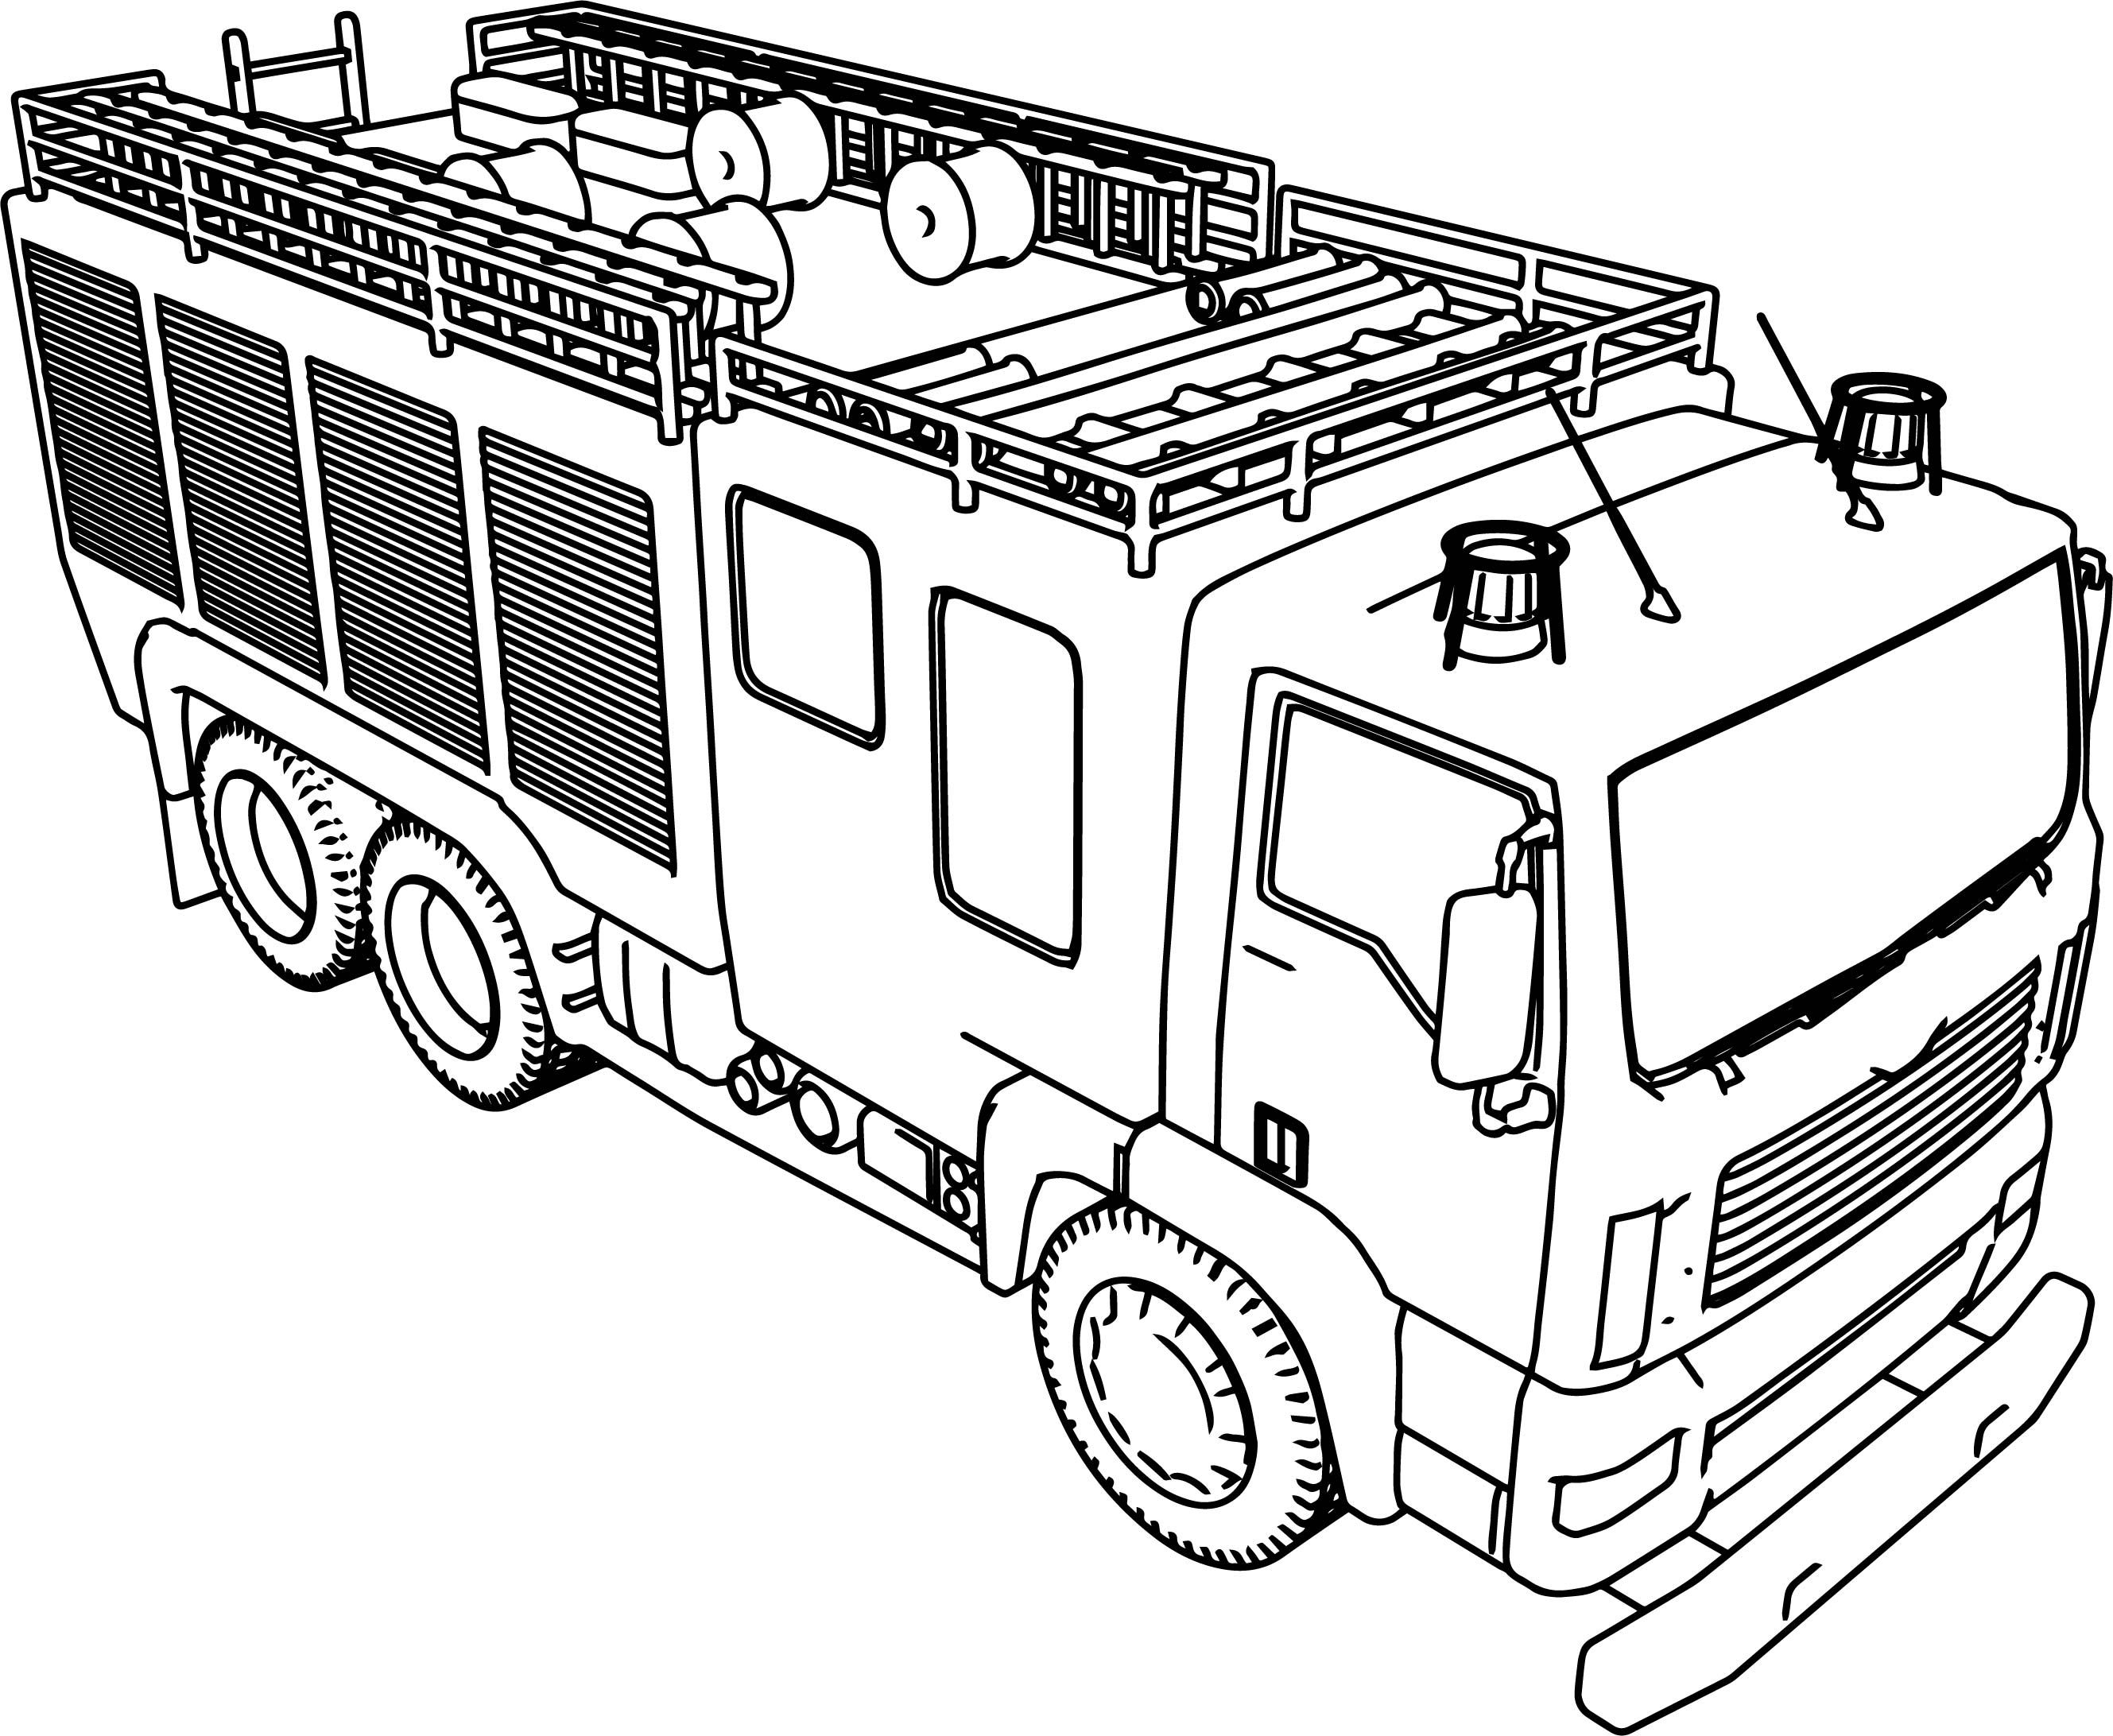 Awesome Big Fire Truck Coloring Page Truck Coloring Pages Fire Trucks Monster Truck Coloring Pages